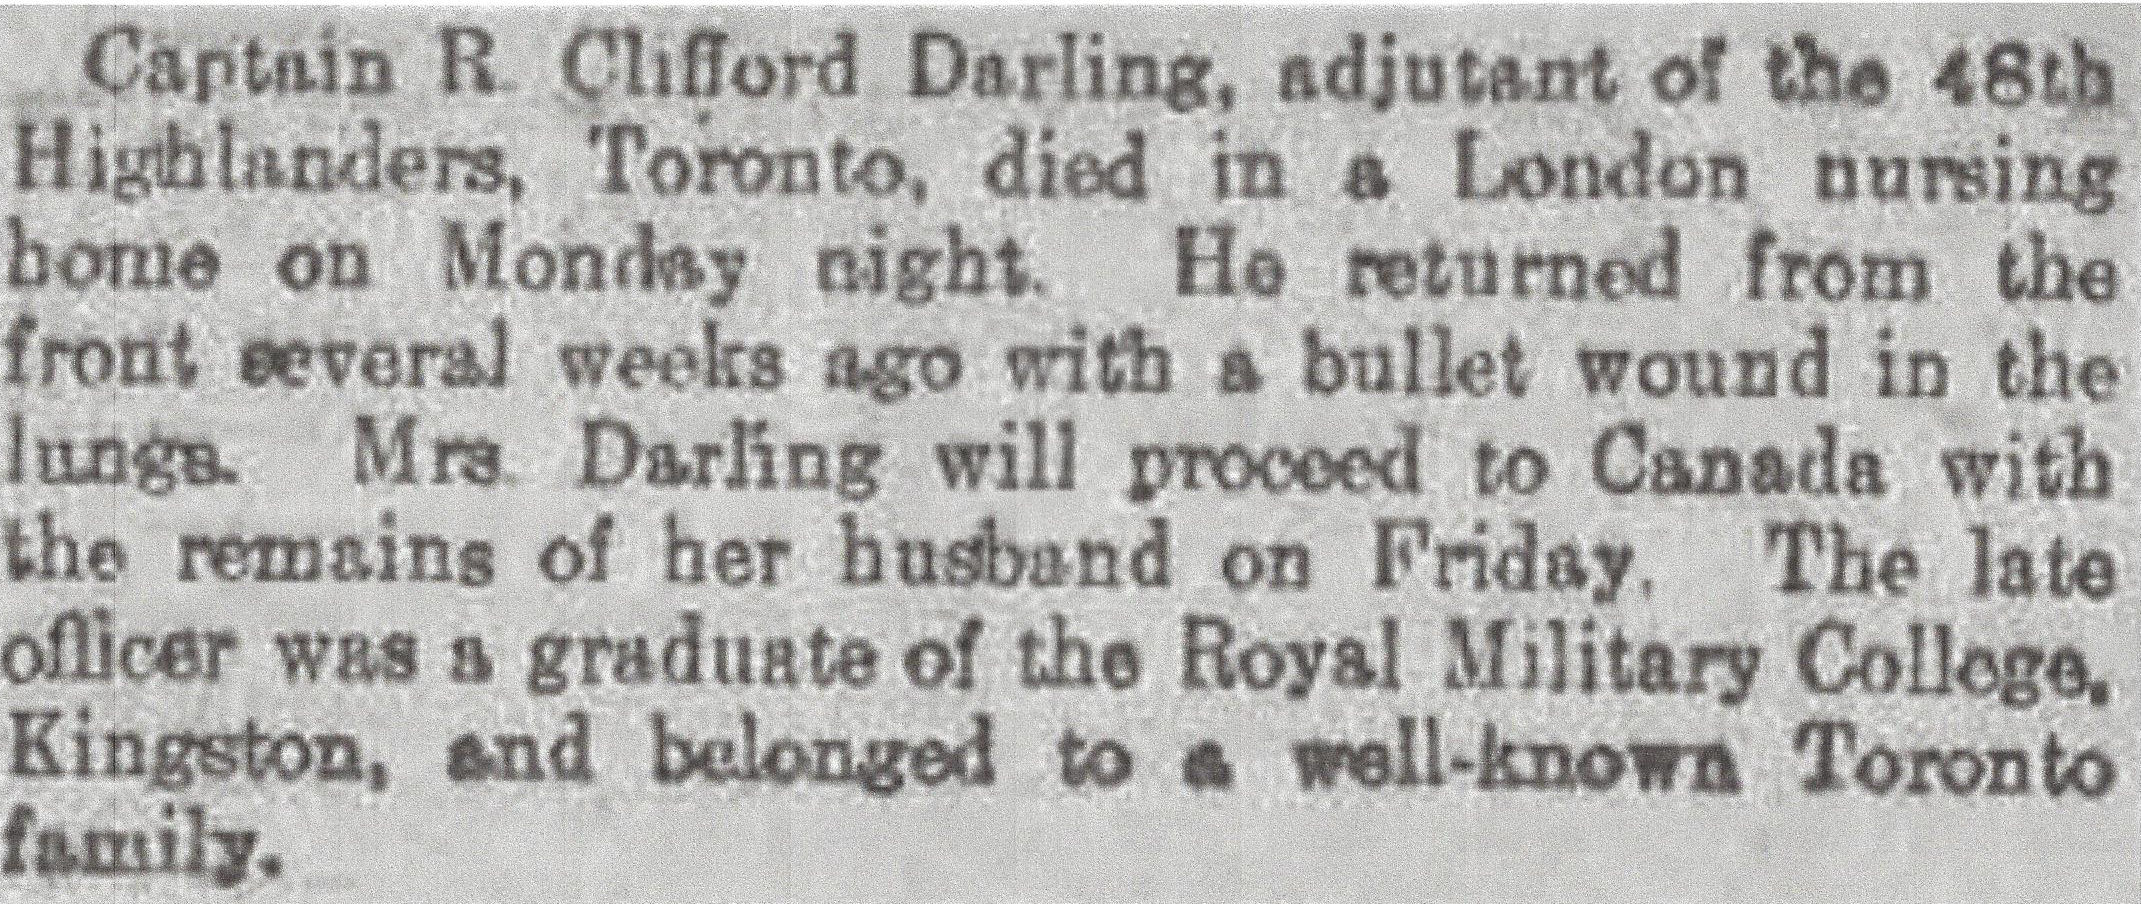 Newspaper Clipping– Newspaper clipping from Daily Telegraph of April 21, 1915. Image taken from web address of http://www.telegraph.co.uk/news/ww1-archive/11545927/Daily-Telegraph-April-21-1915.html